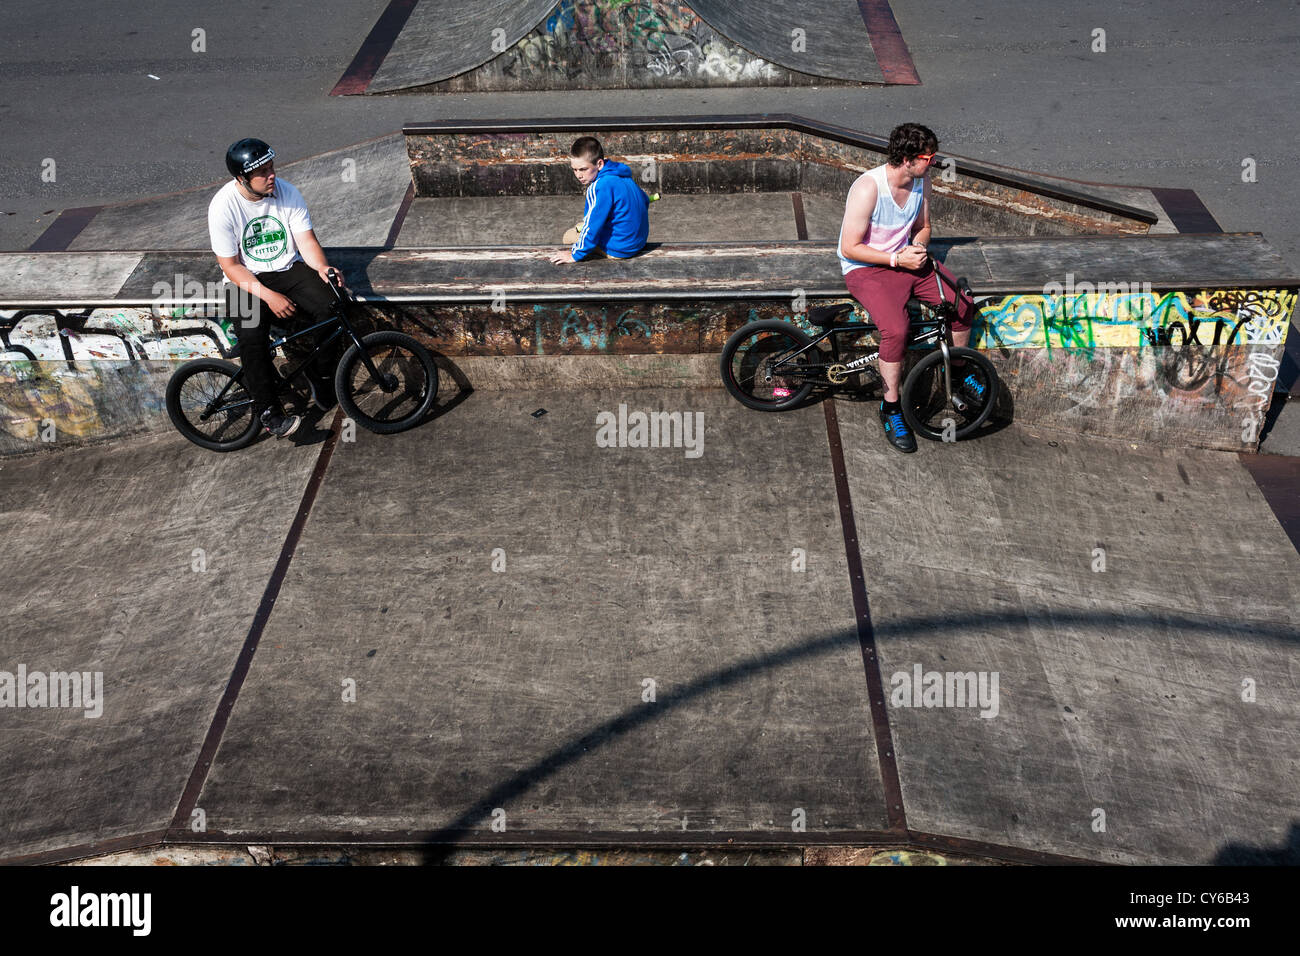 Teenagers riding bikes in a skate park. - Stock Image